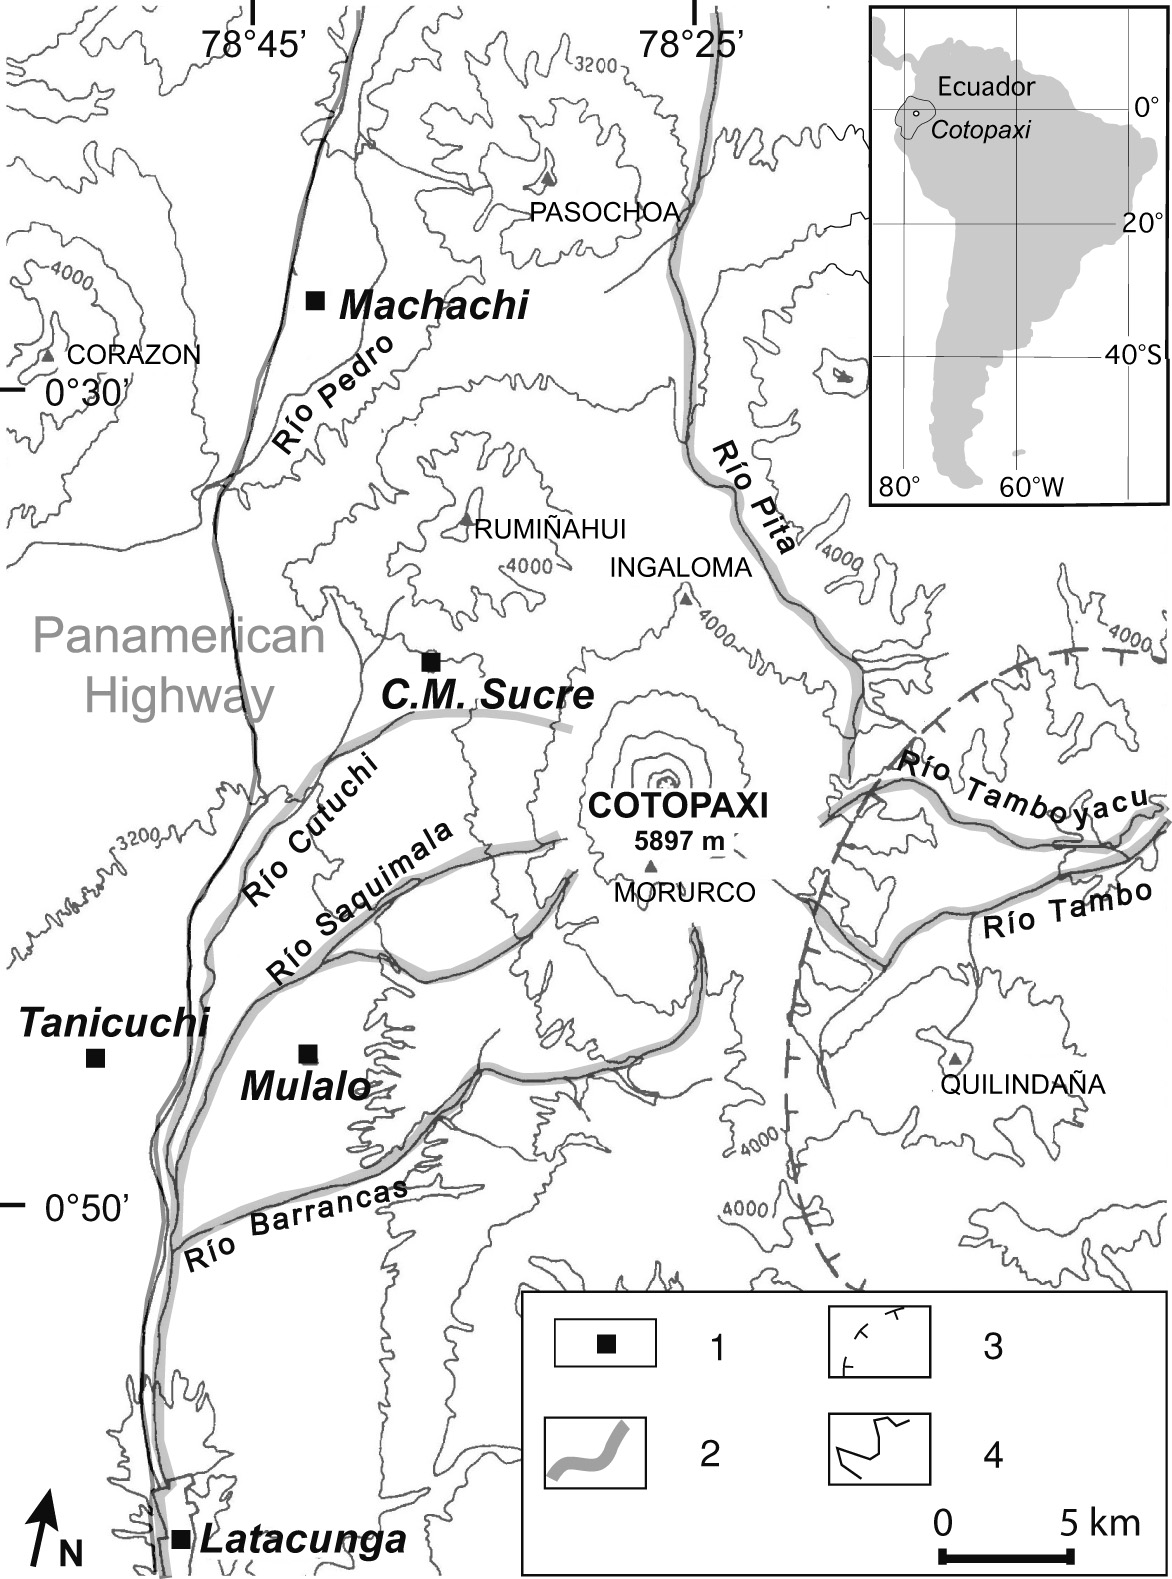 the 1877 lahar deposits on the eastern flank of cotopaxi volcano Resume Objective Examples url journals openedition geomorphologie docannexe image 4022 img 1